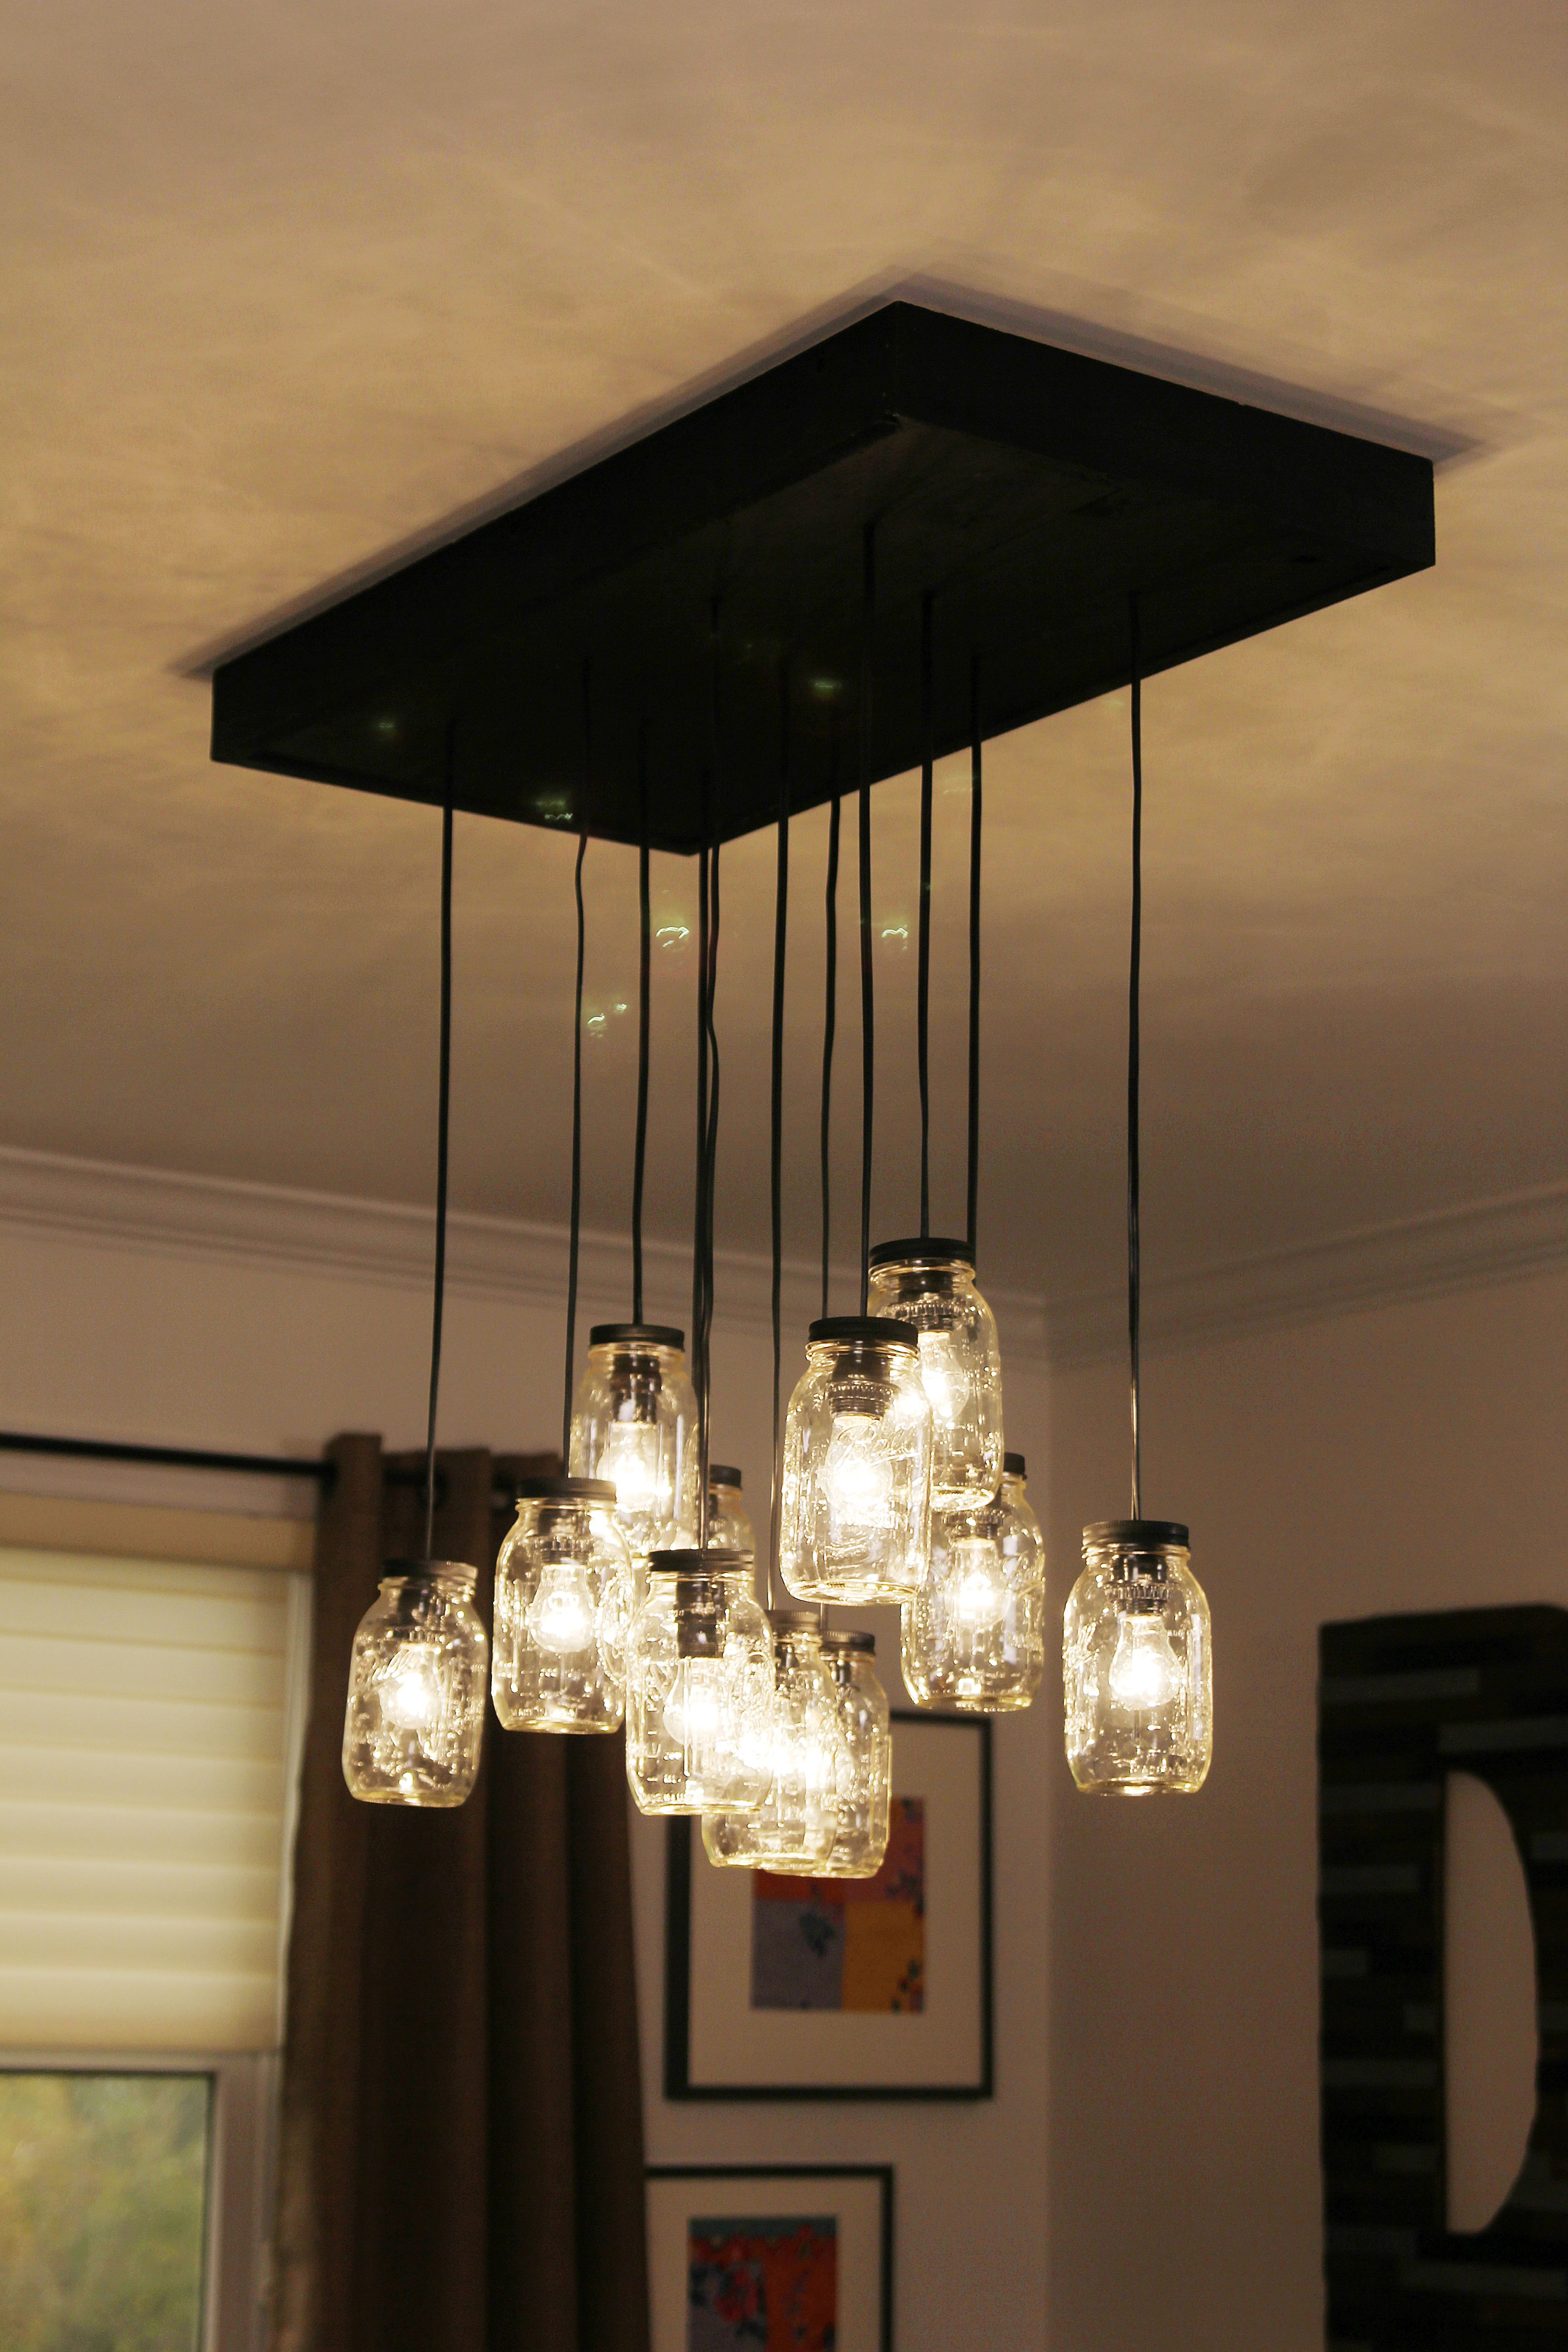 15 Awesome DIY Light Fixtures